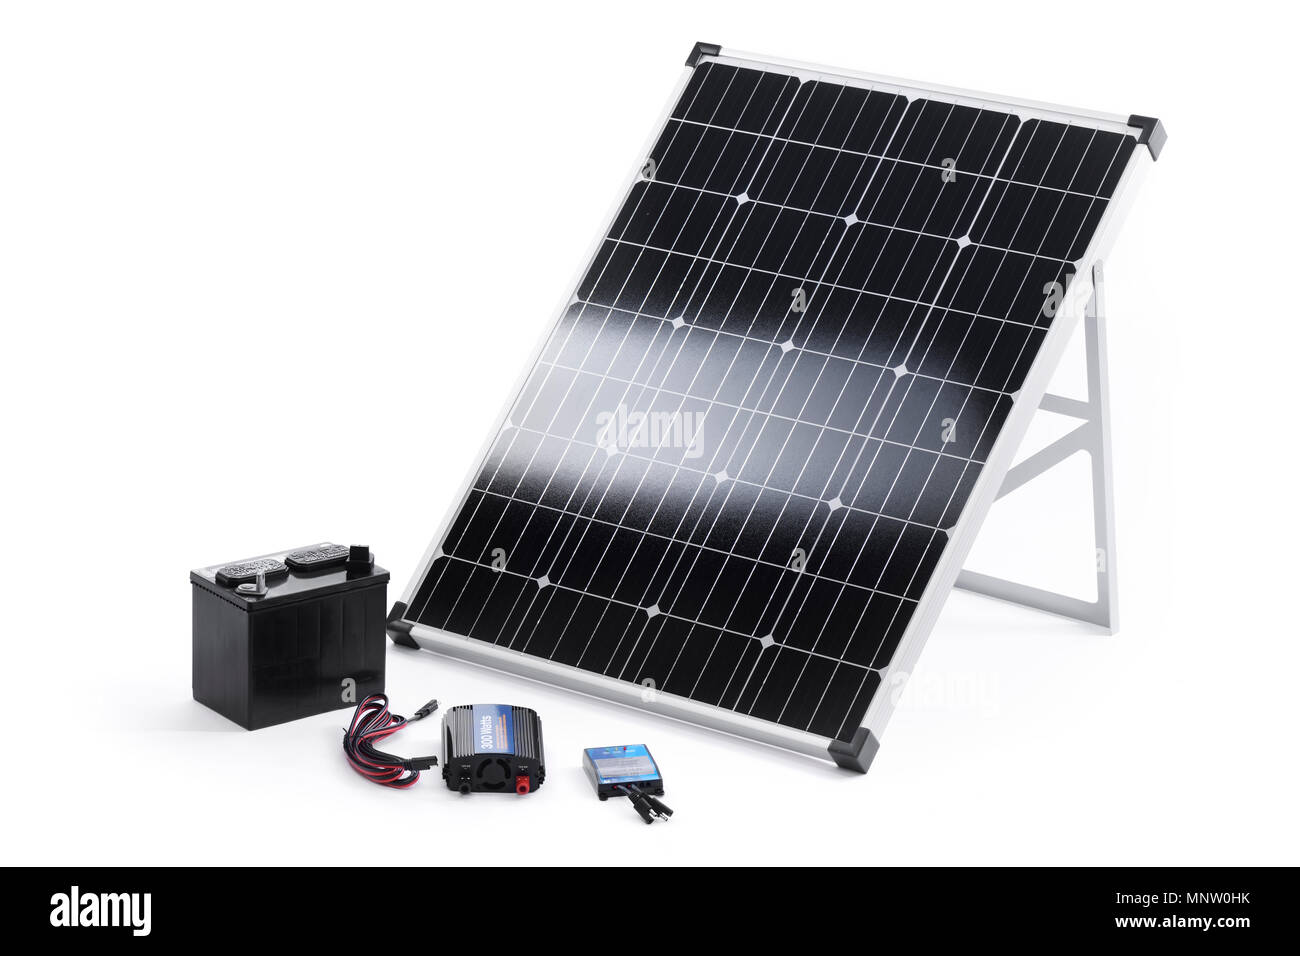 Solar power kit with a portable 100 Watt crystalline solar panel, inverter, charge controller and a battery isolated on white background - Stock Image